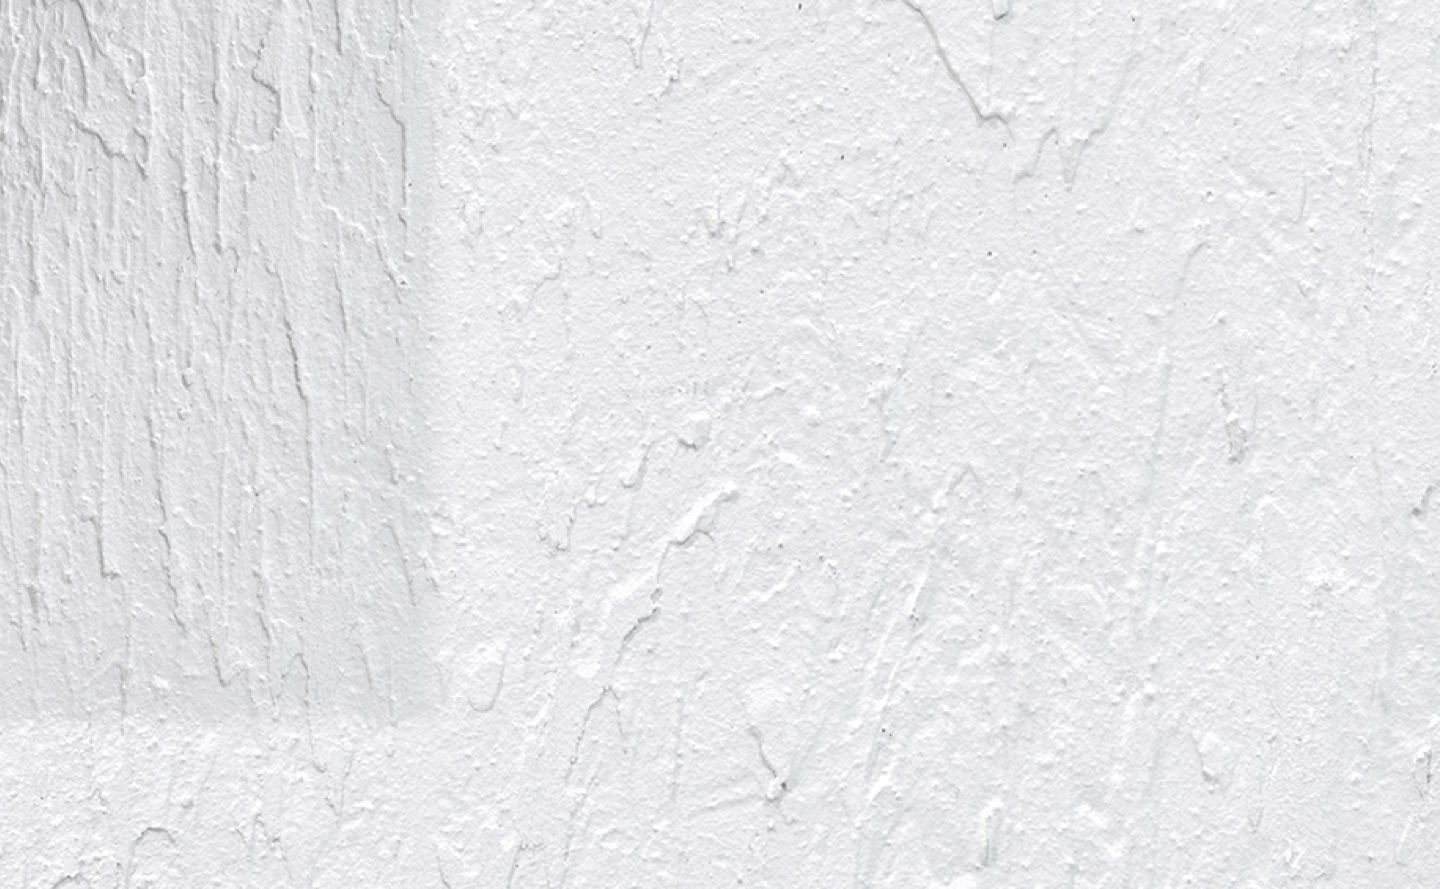 textured wall finish closeup in white